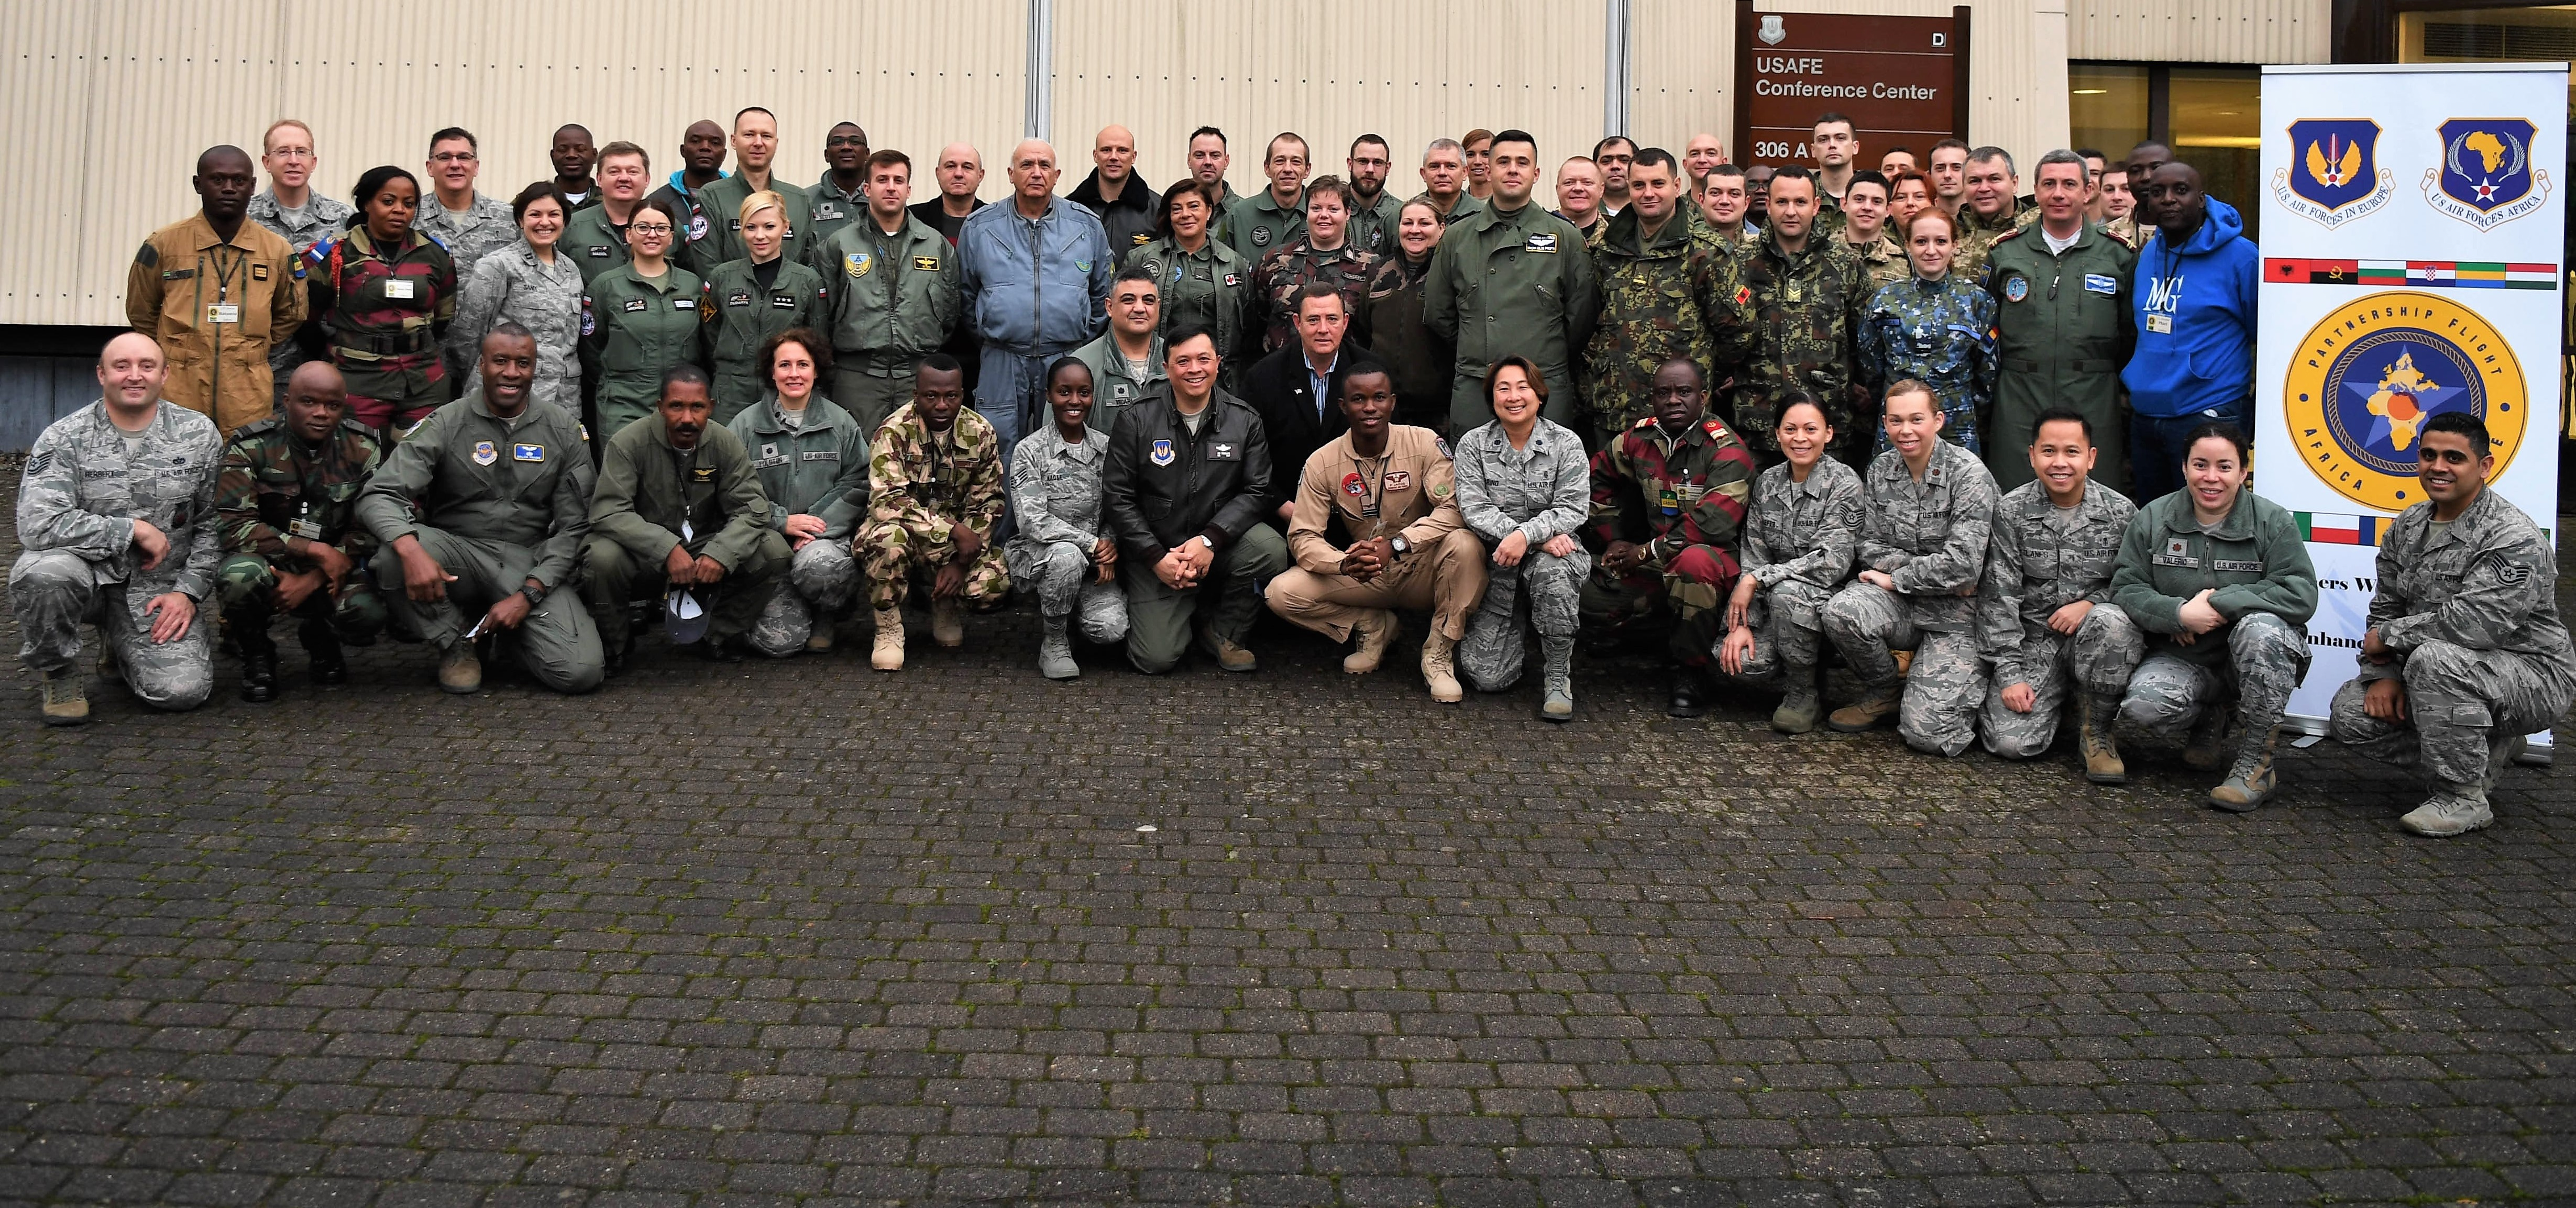 More than 50 representatives from 13 countries attended the first-ever U.S. Air Forces in Europe-Air Forces Africa Partnership Flight Symposium at Ramstein Air Base, Jan. 16, 2018. The symposium was created as a forum to share best practices and enhance cooperation between allied and partner nations. (U.S. Air Force photo by Tech. Sgt. Rachelle Coleman/Released)